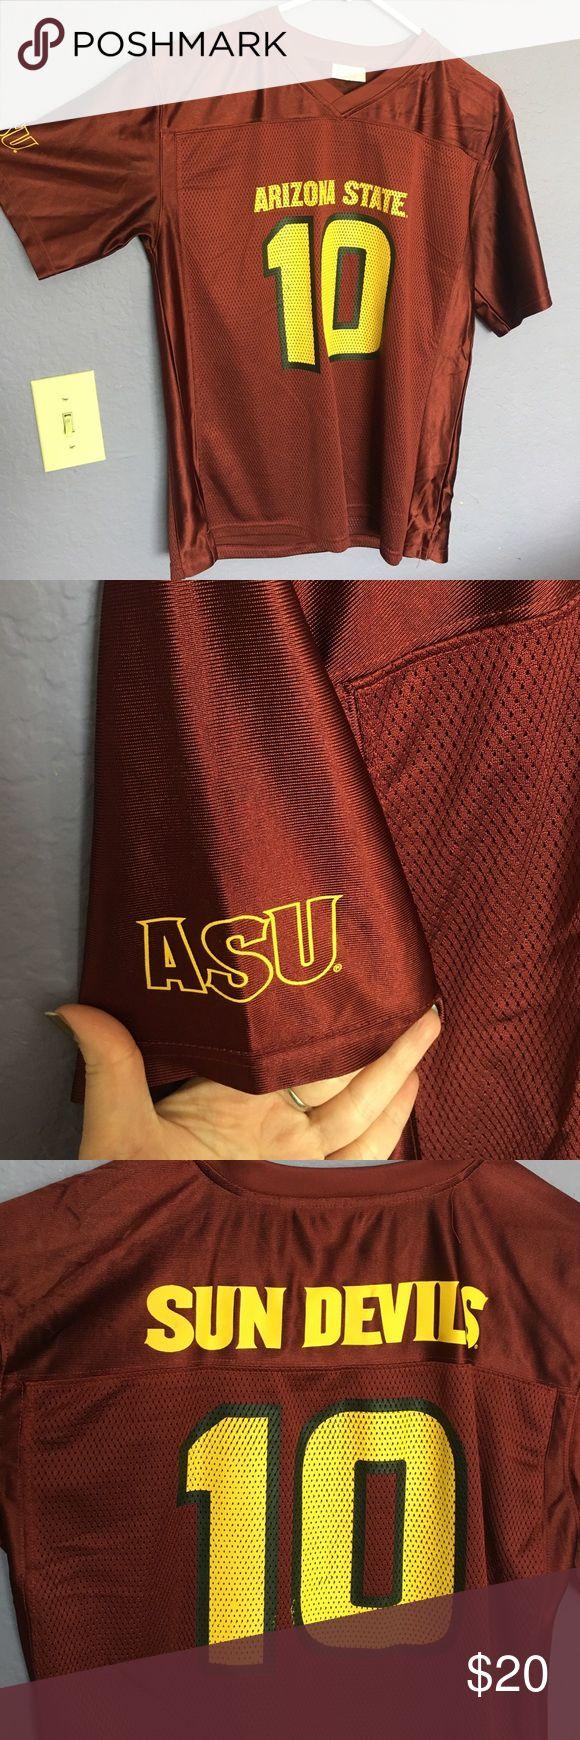 ASU jersey Maroon and Gold Arizona State University #10 jersey in great condition. Boys size XL but fits like a woman's Small! Perfect for college game day! ProEdge Other